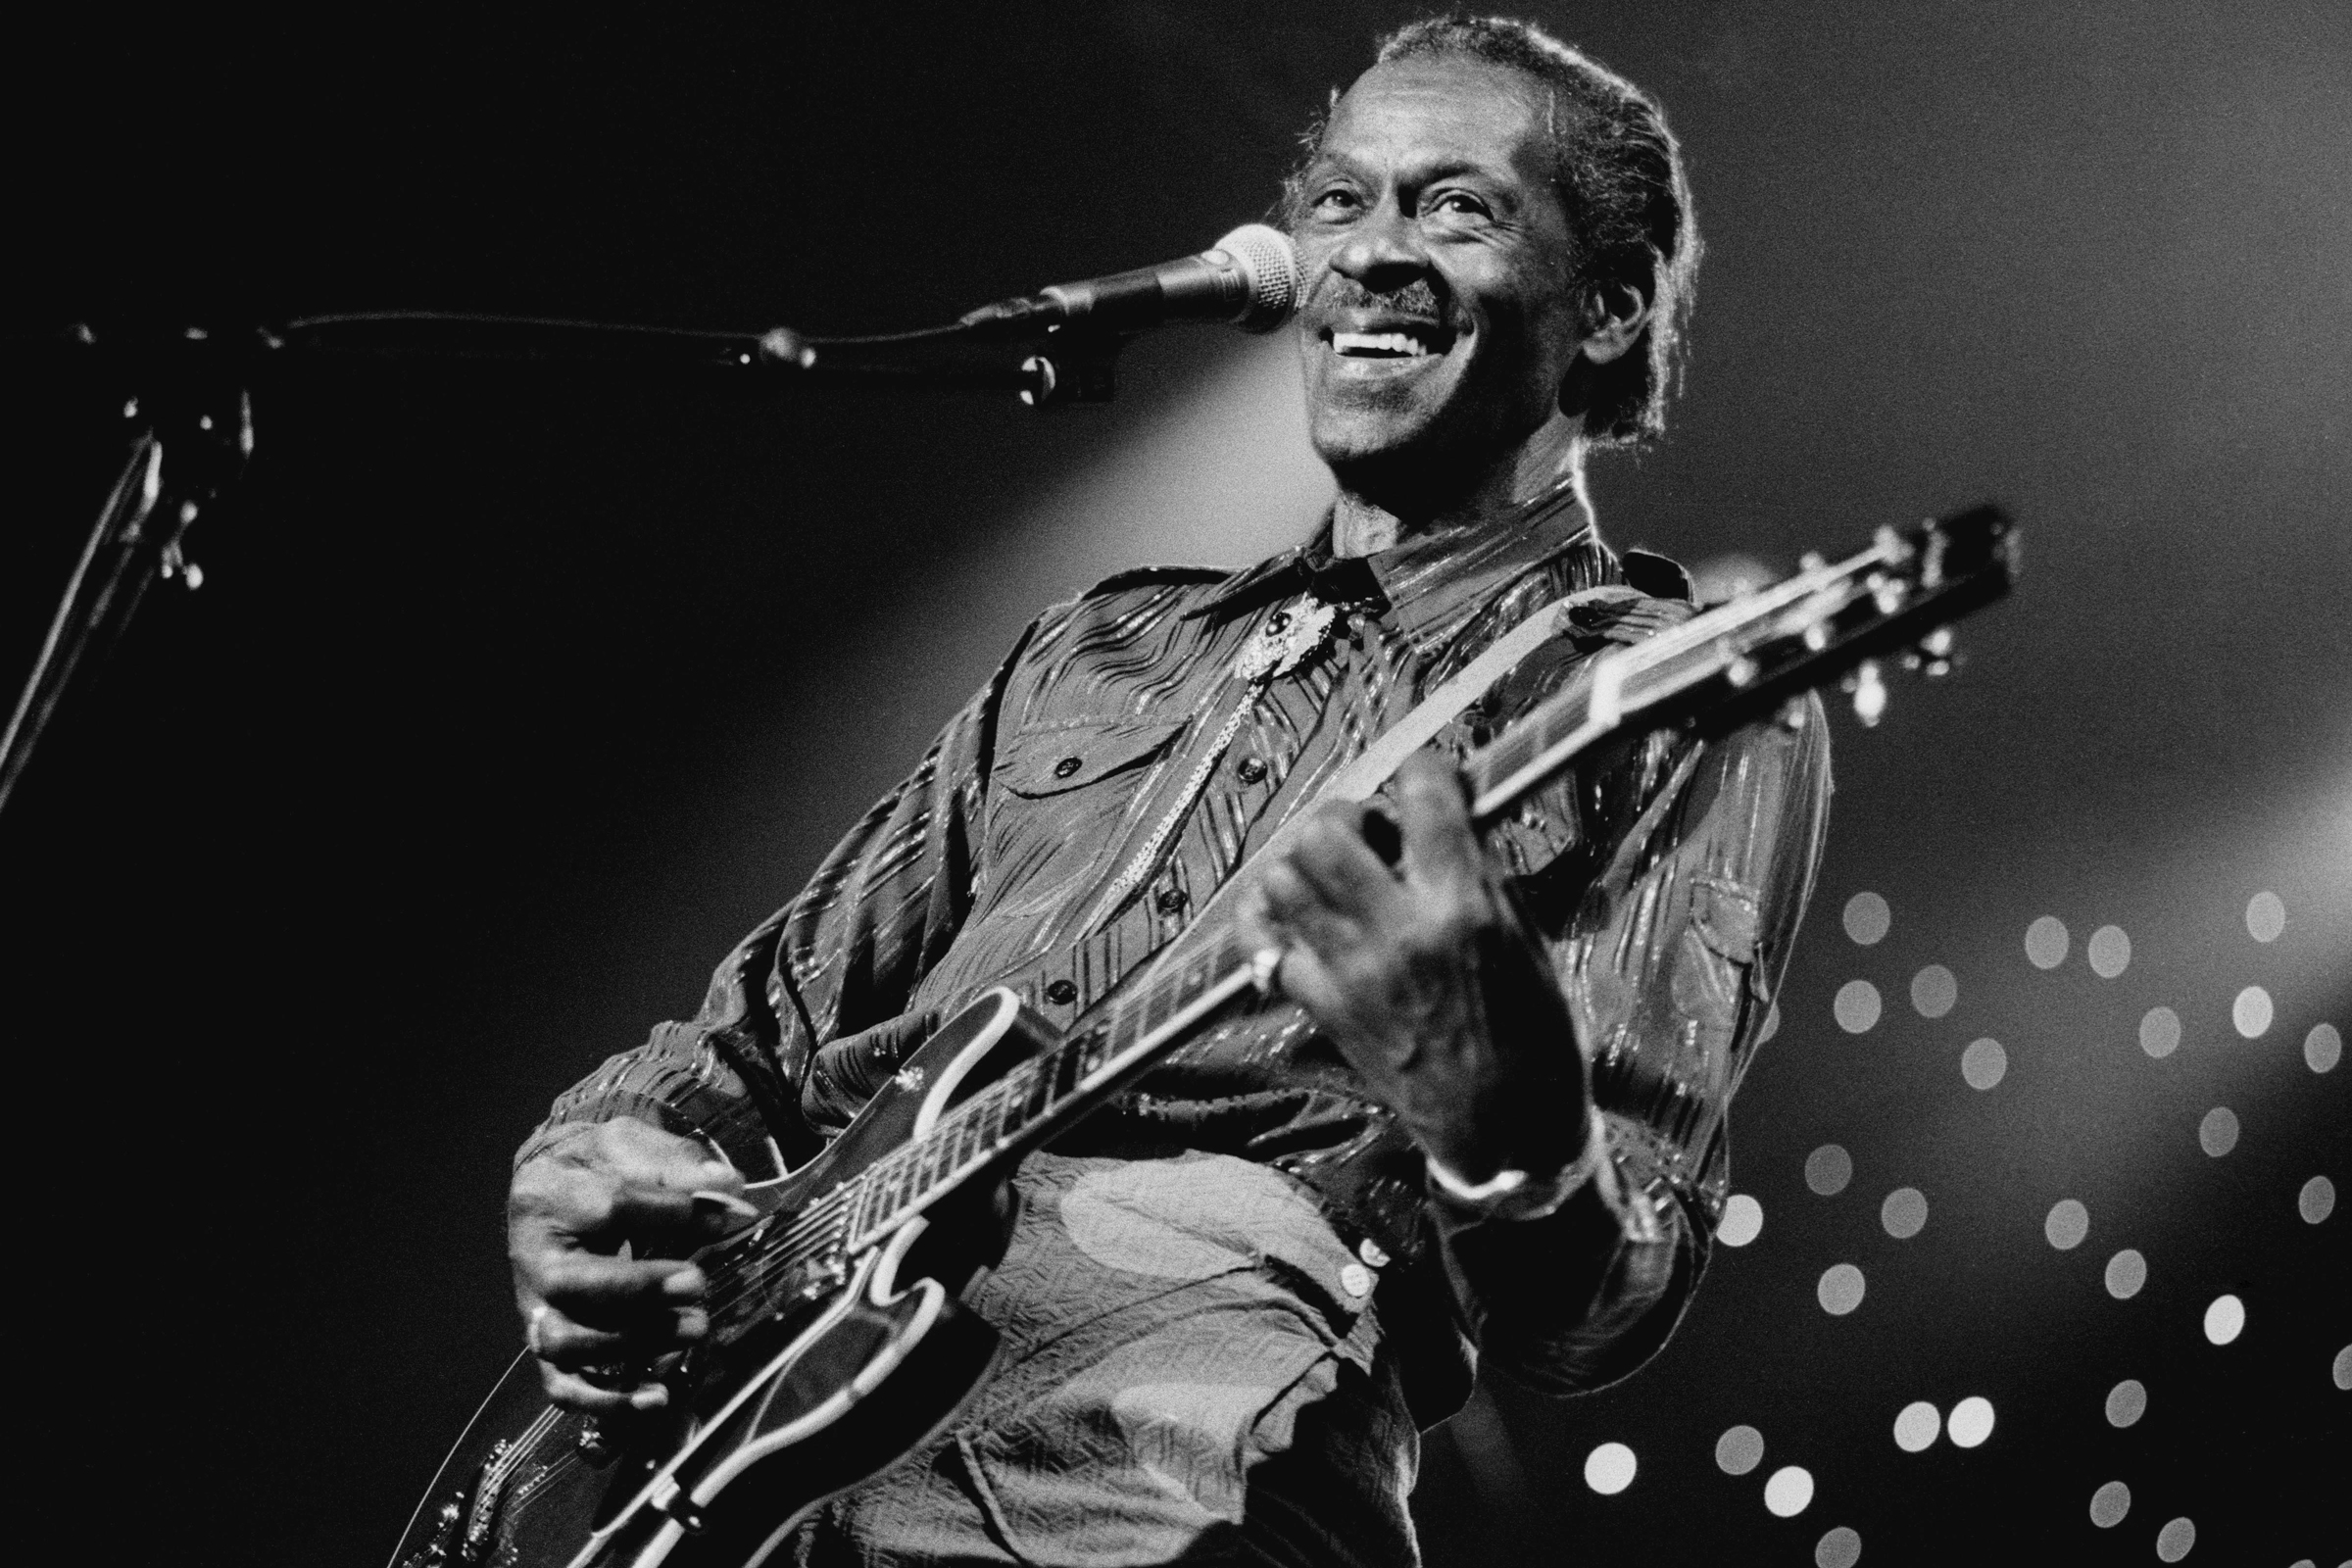 chuck berry s family and famous fans remember him in doc trailer rolling stone. Black Bedroom Furniture Sets. Home Design Ideas